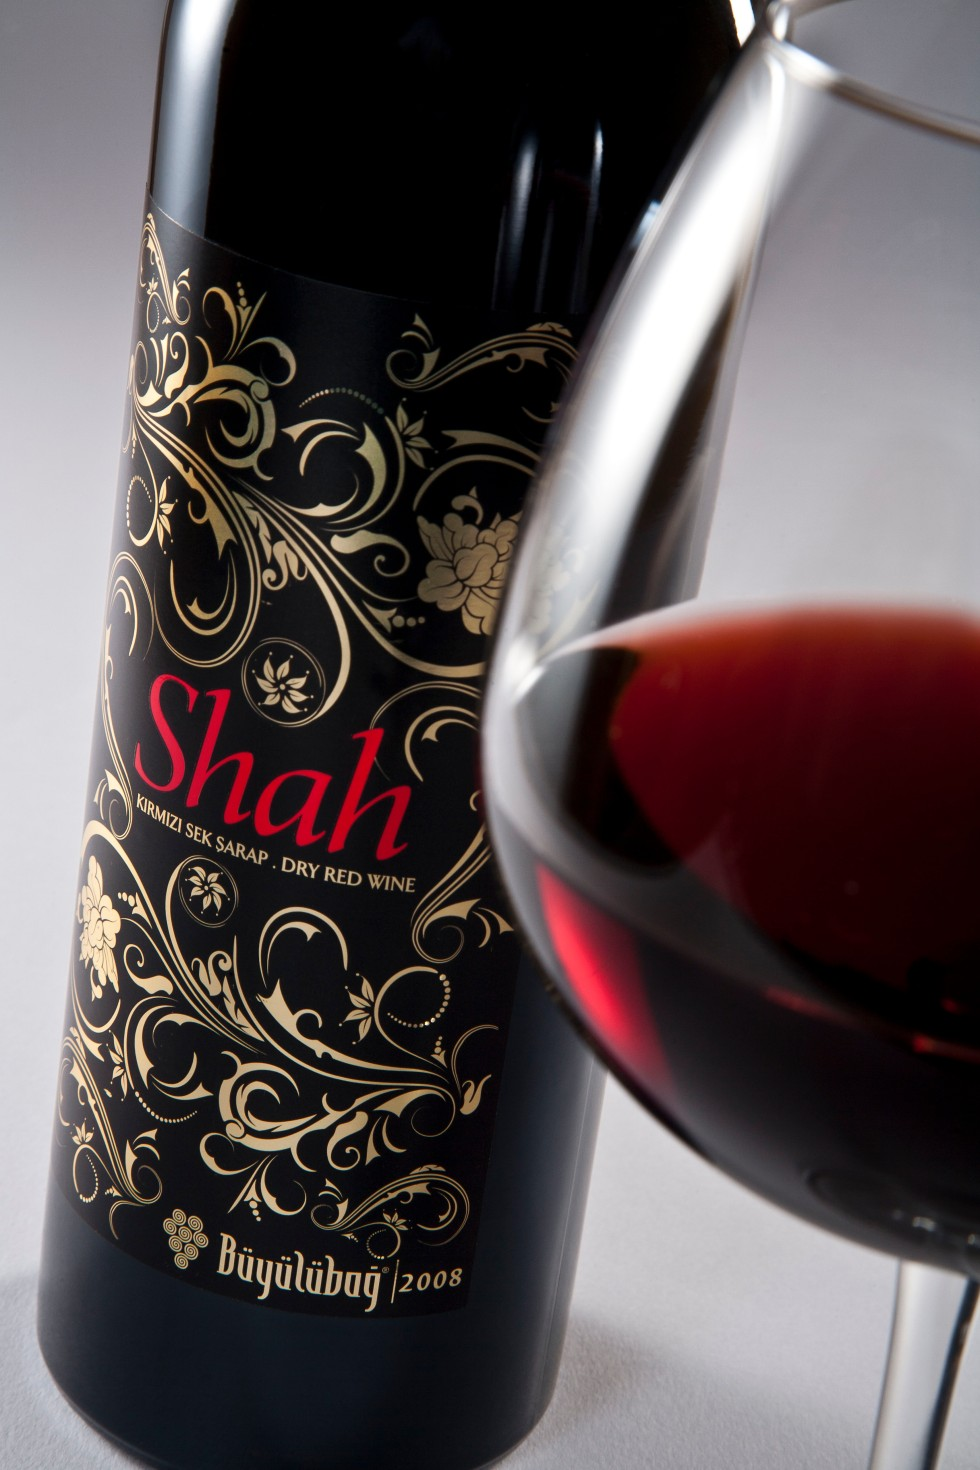 Syrah wine from Turkey